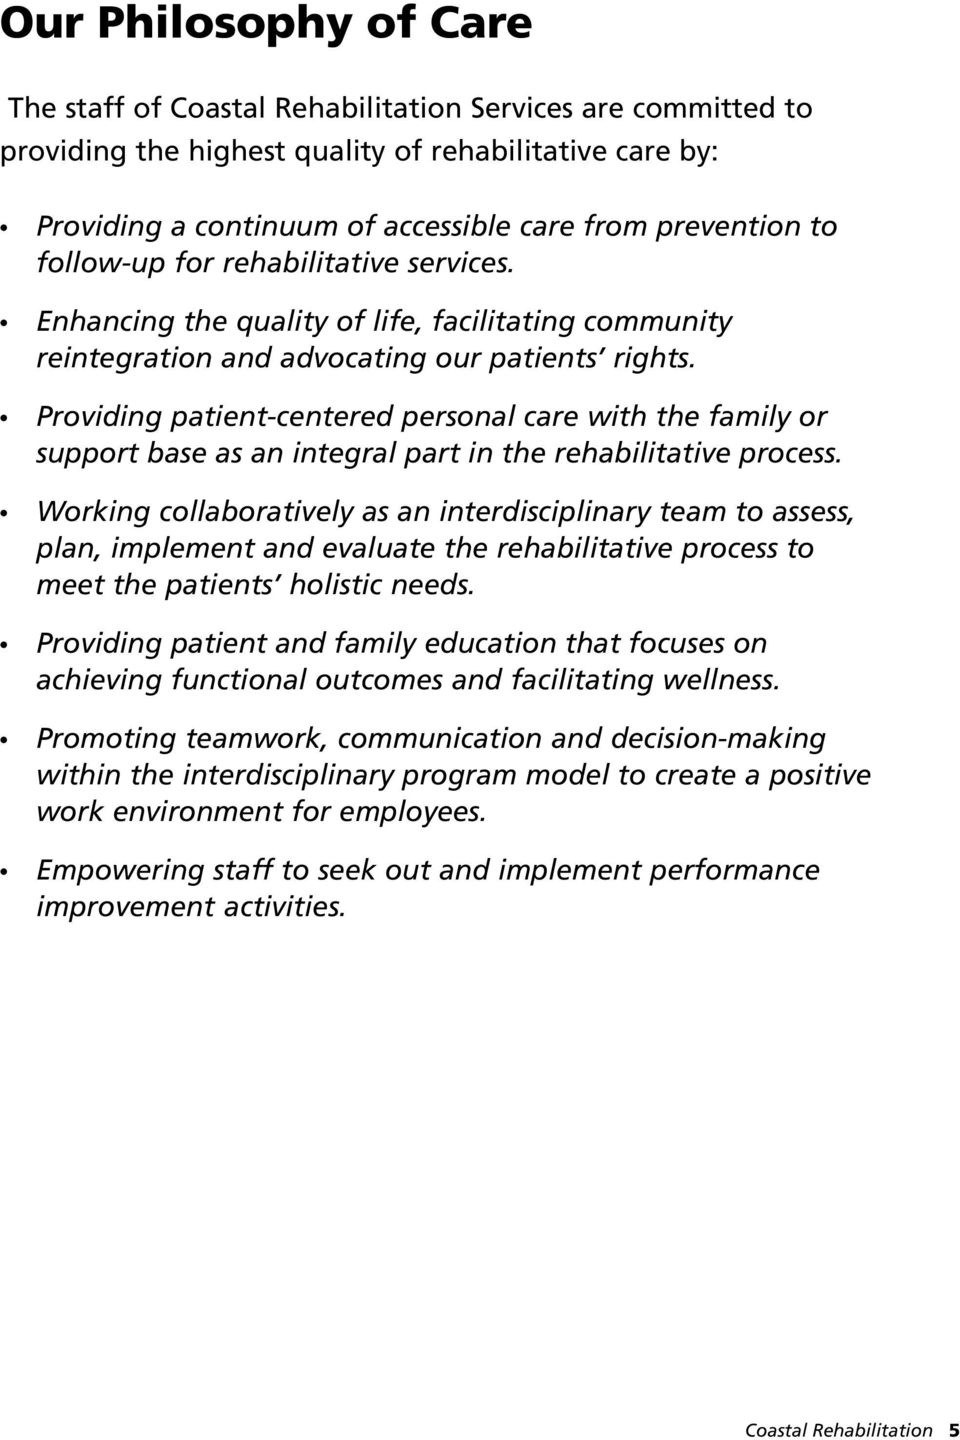 Providing patient-centered personal care with the family or support base as an integral part in the rehabilitative process.